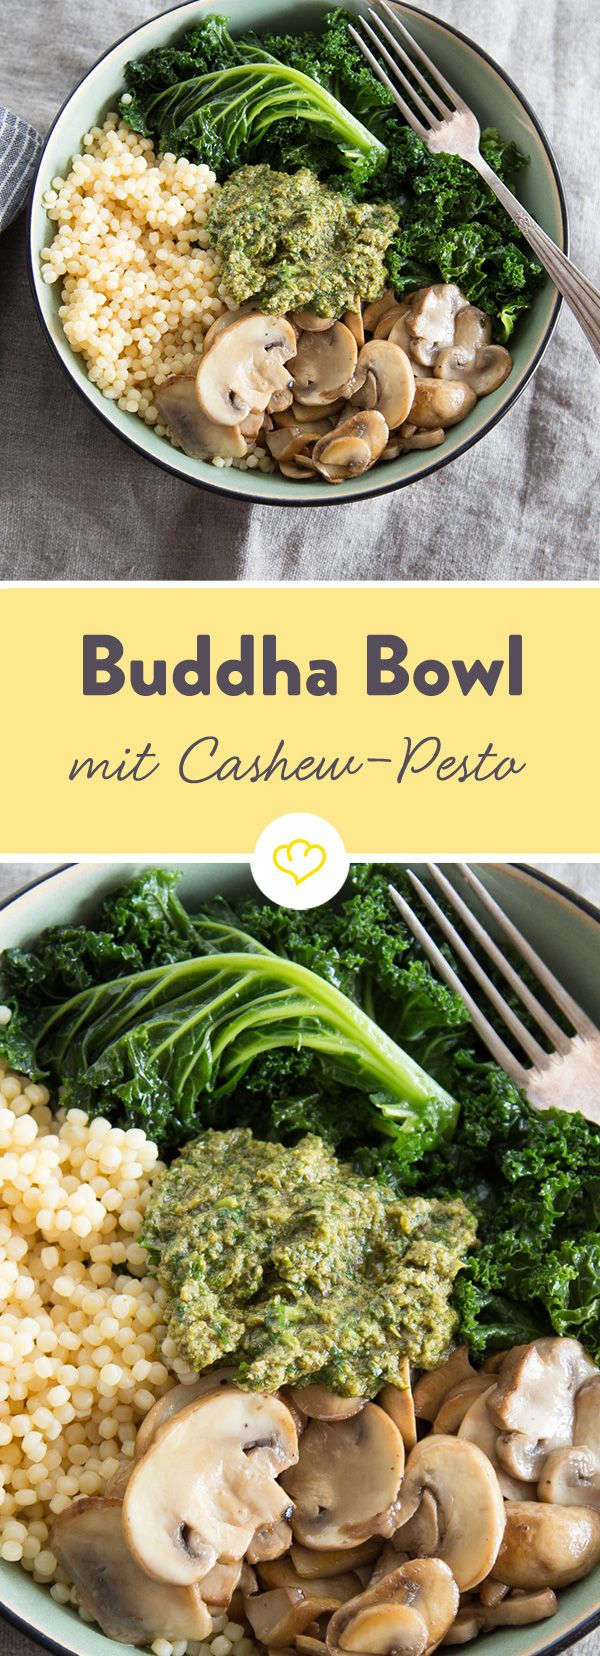 vegane buddha bowl mit cashew pesto rezept an die pilze fertig los pinterest. Black Bedroom Furniture Sets. Home Design Ideas